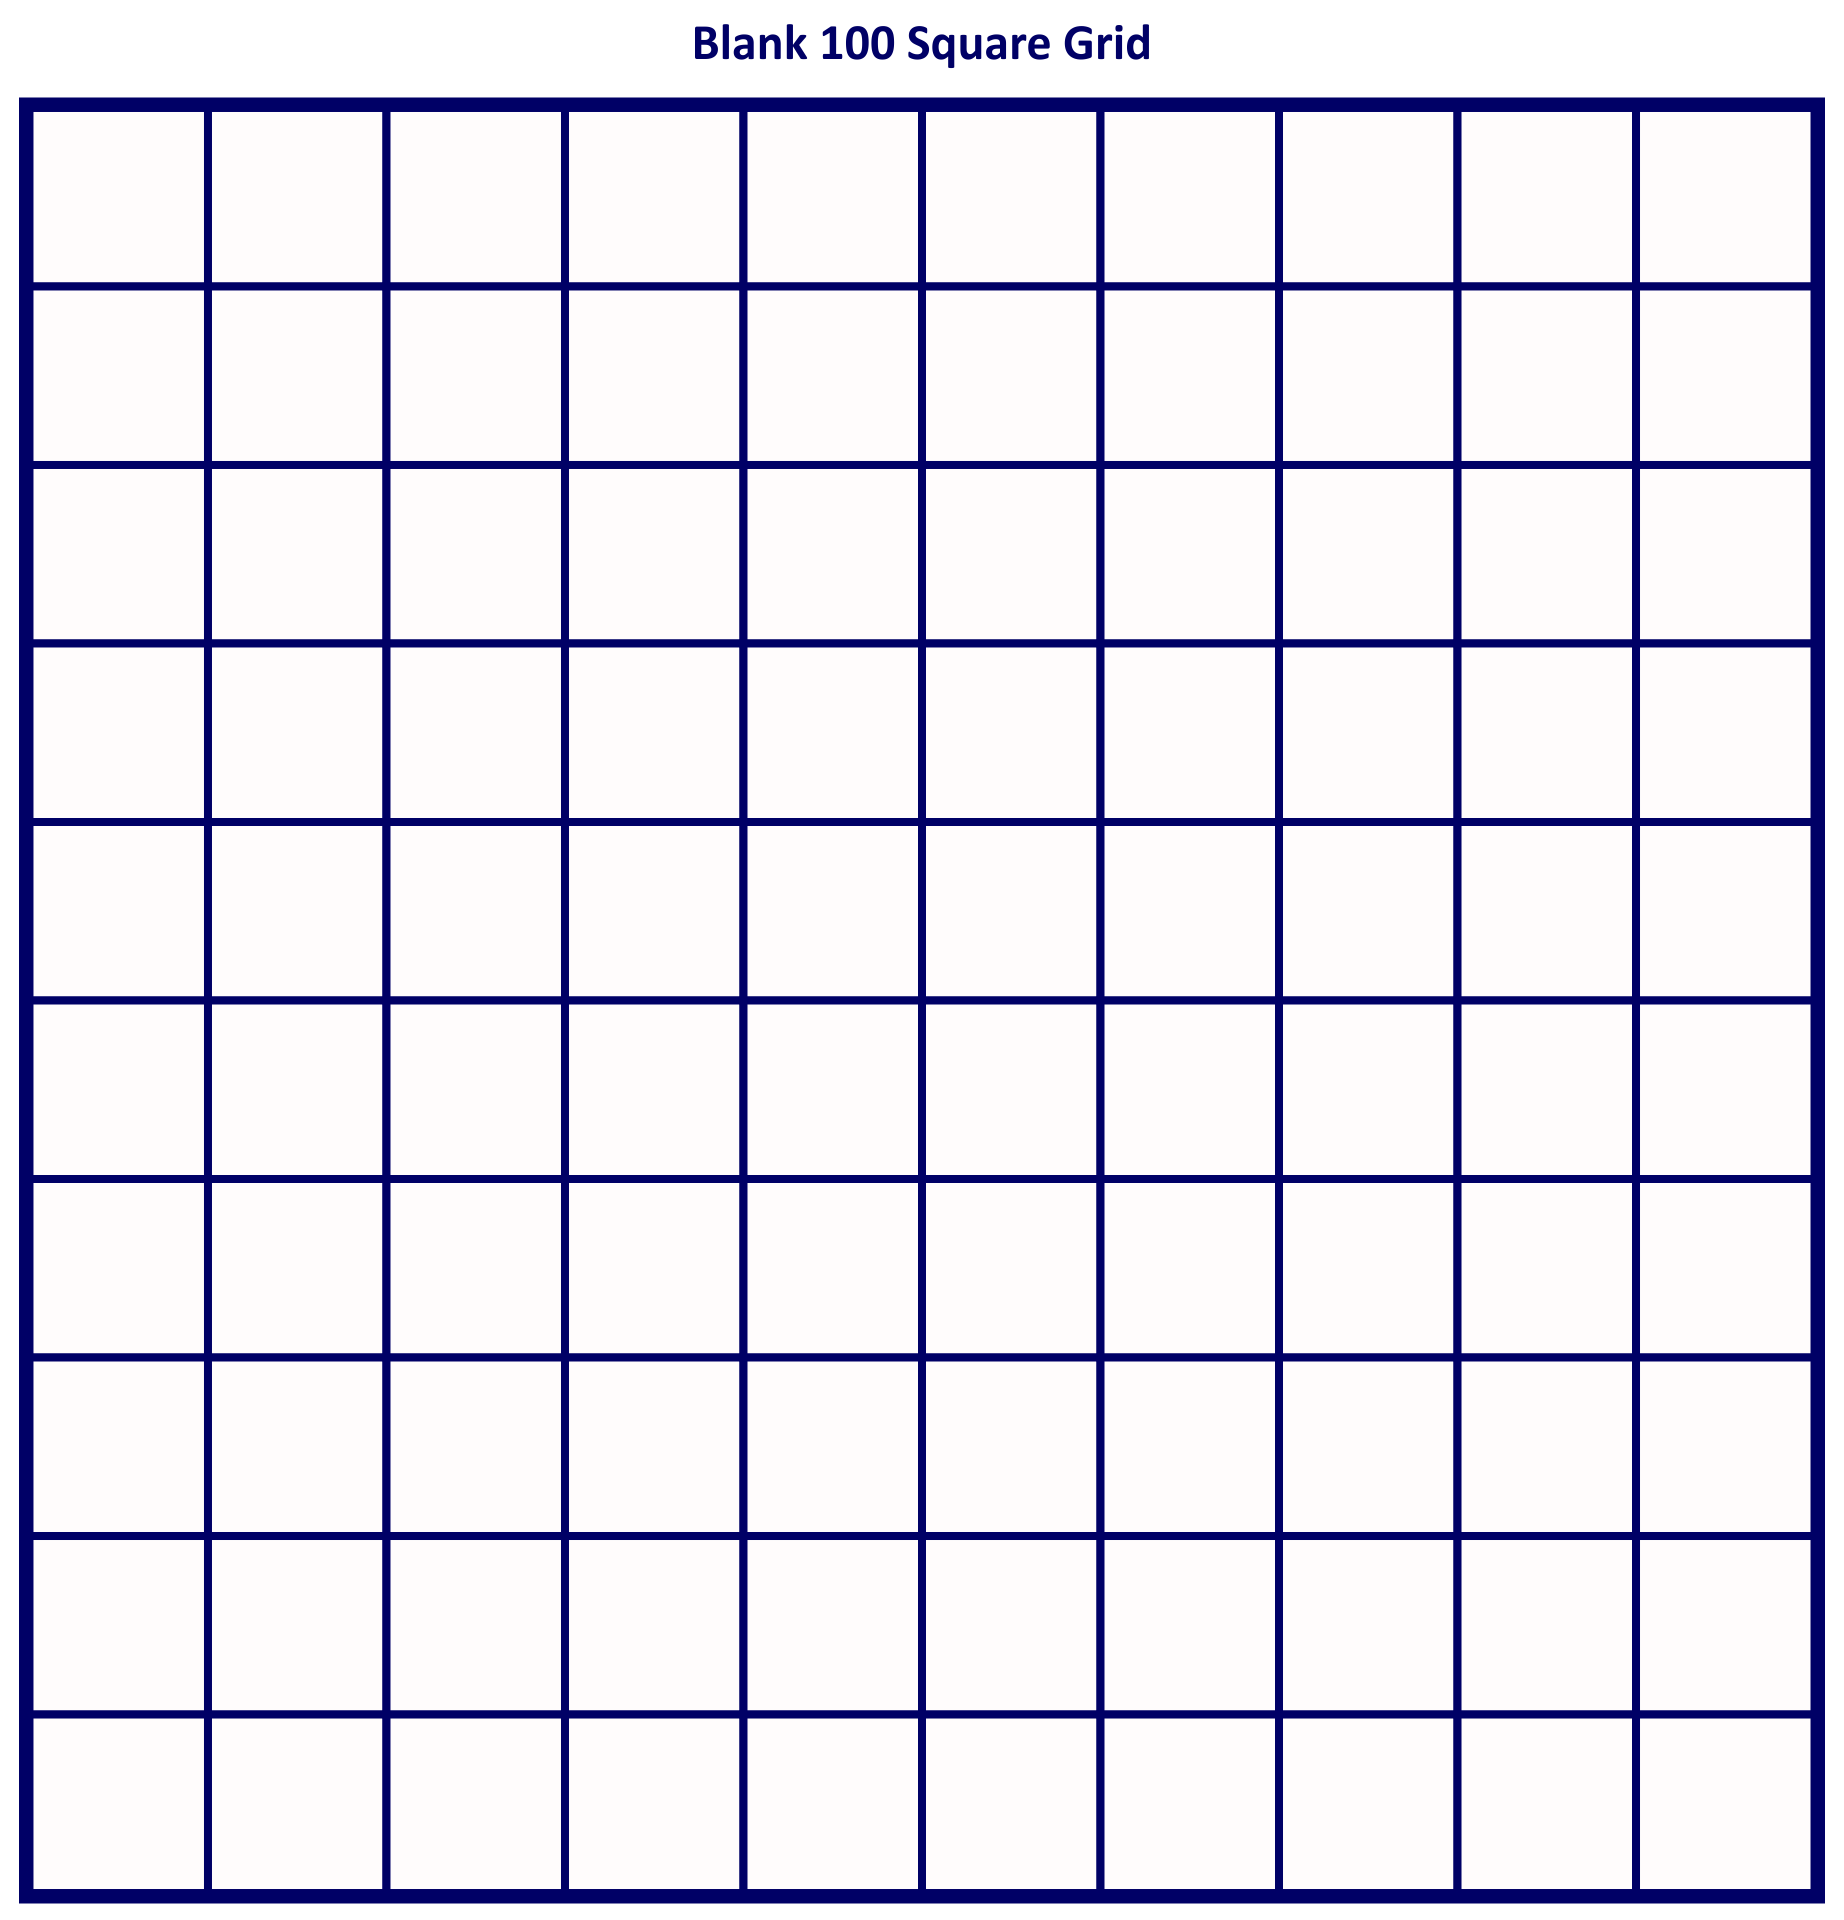 ... Printable Blank 100 Square Grid and Printable 100 Square Chart